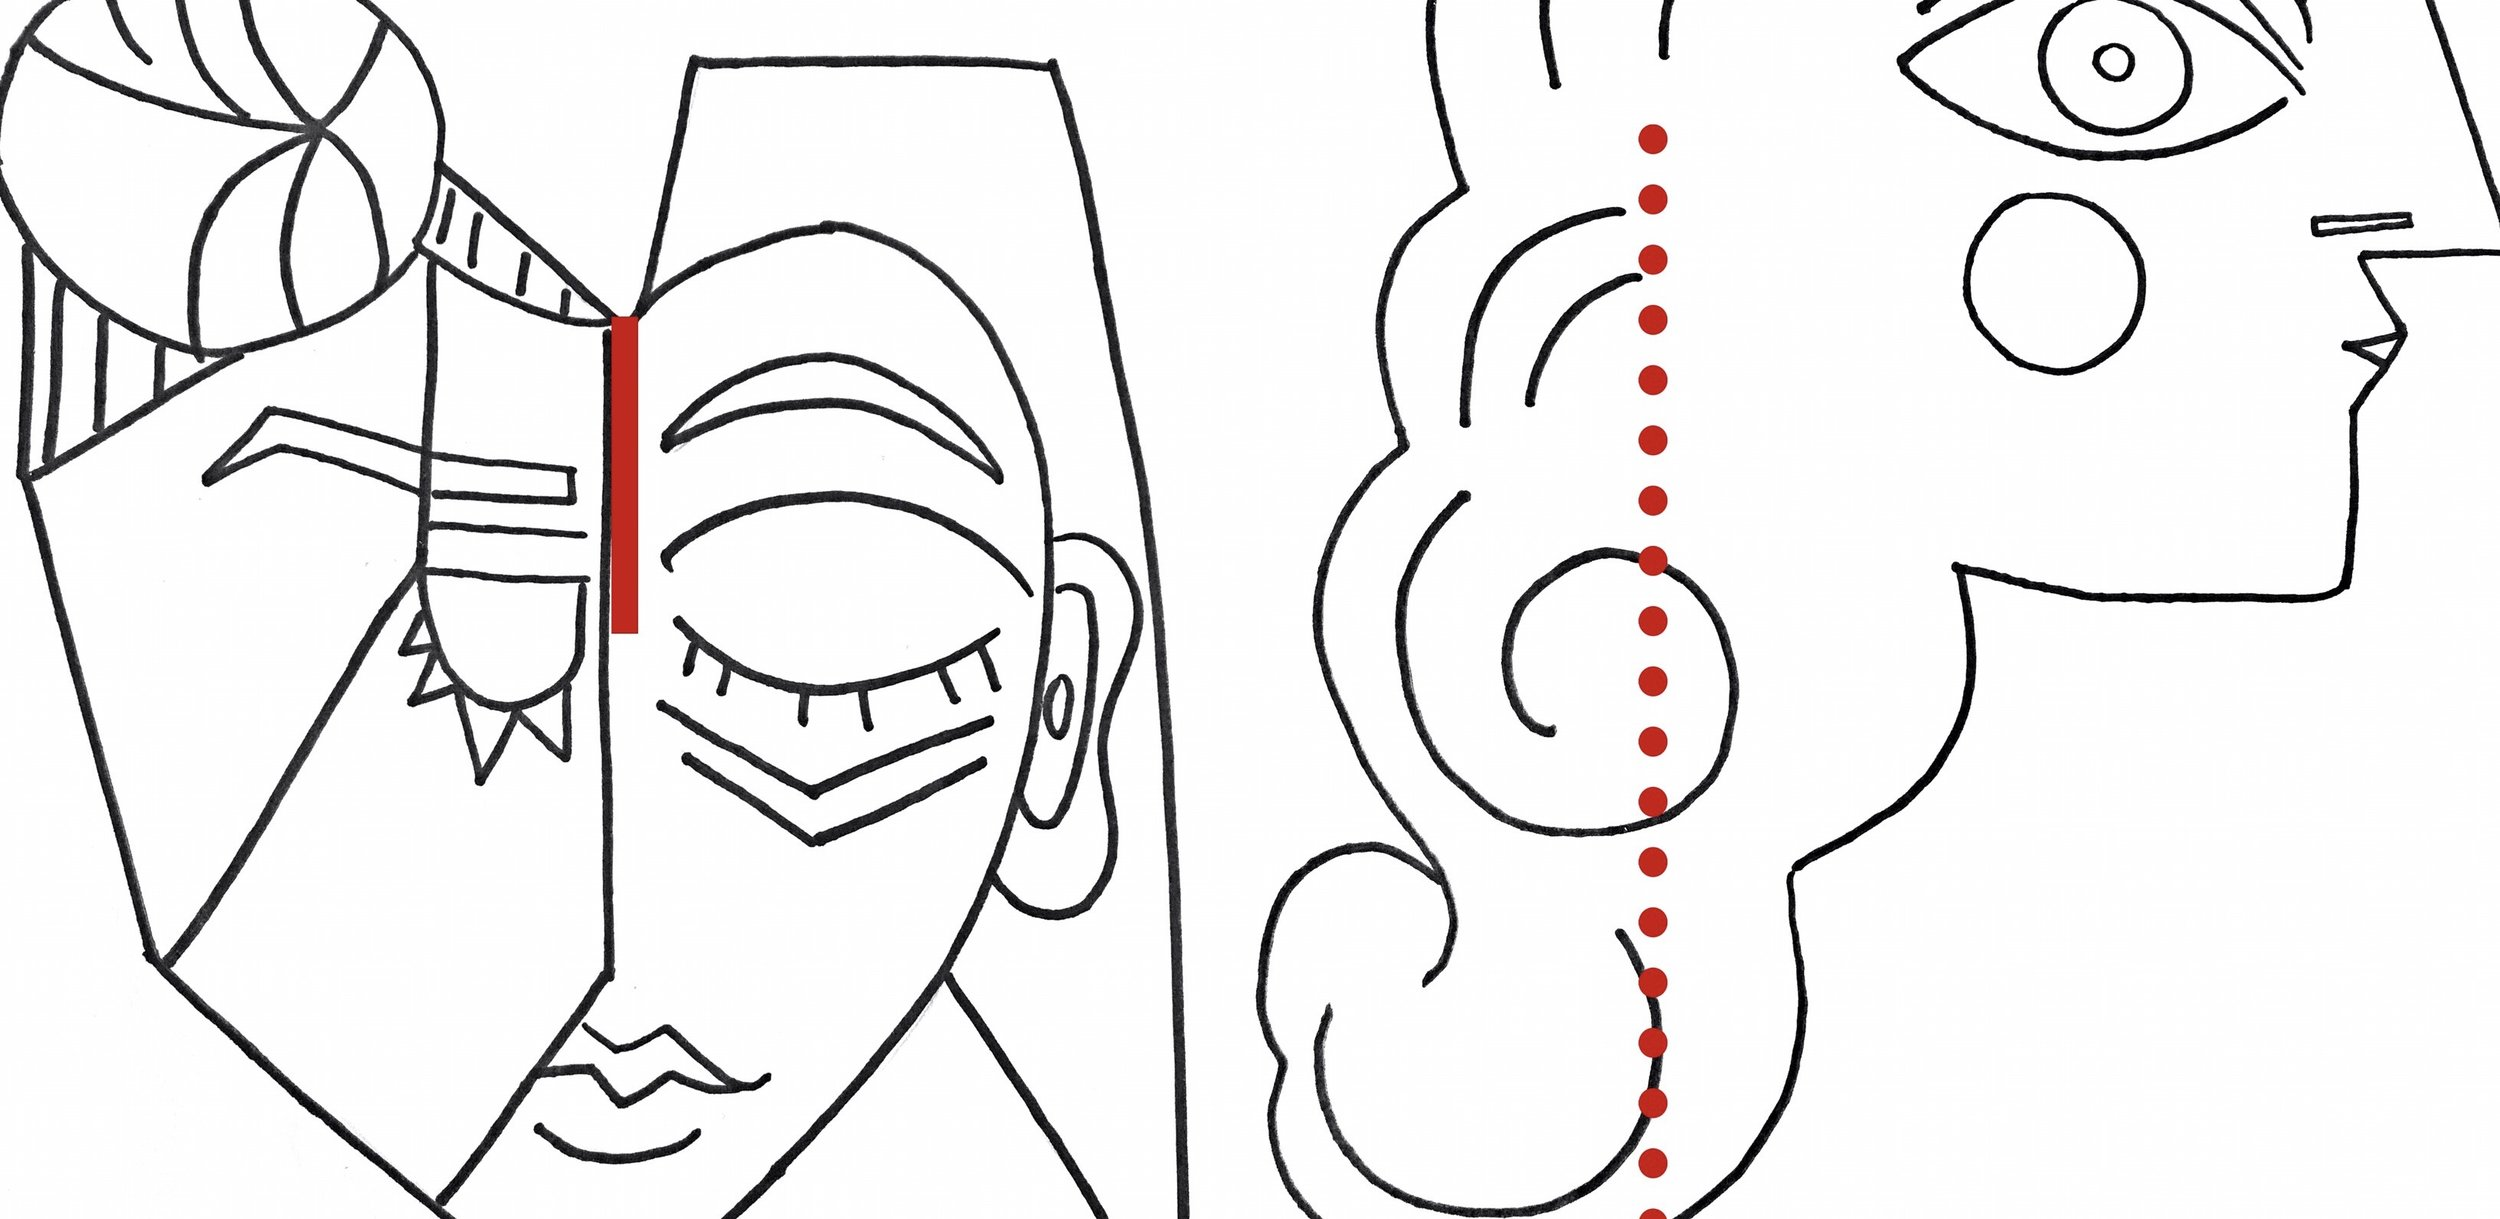 Red = where to cut your facial notches.